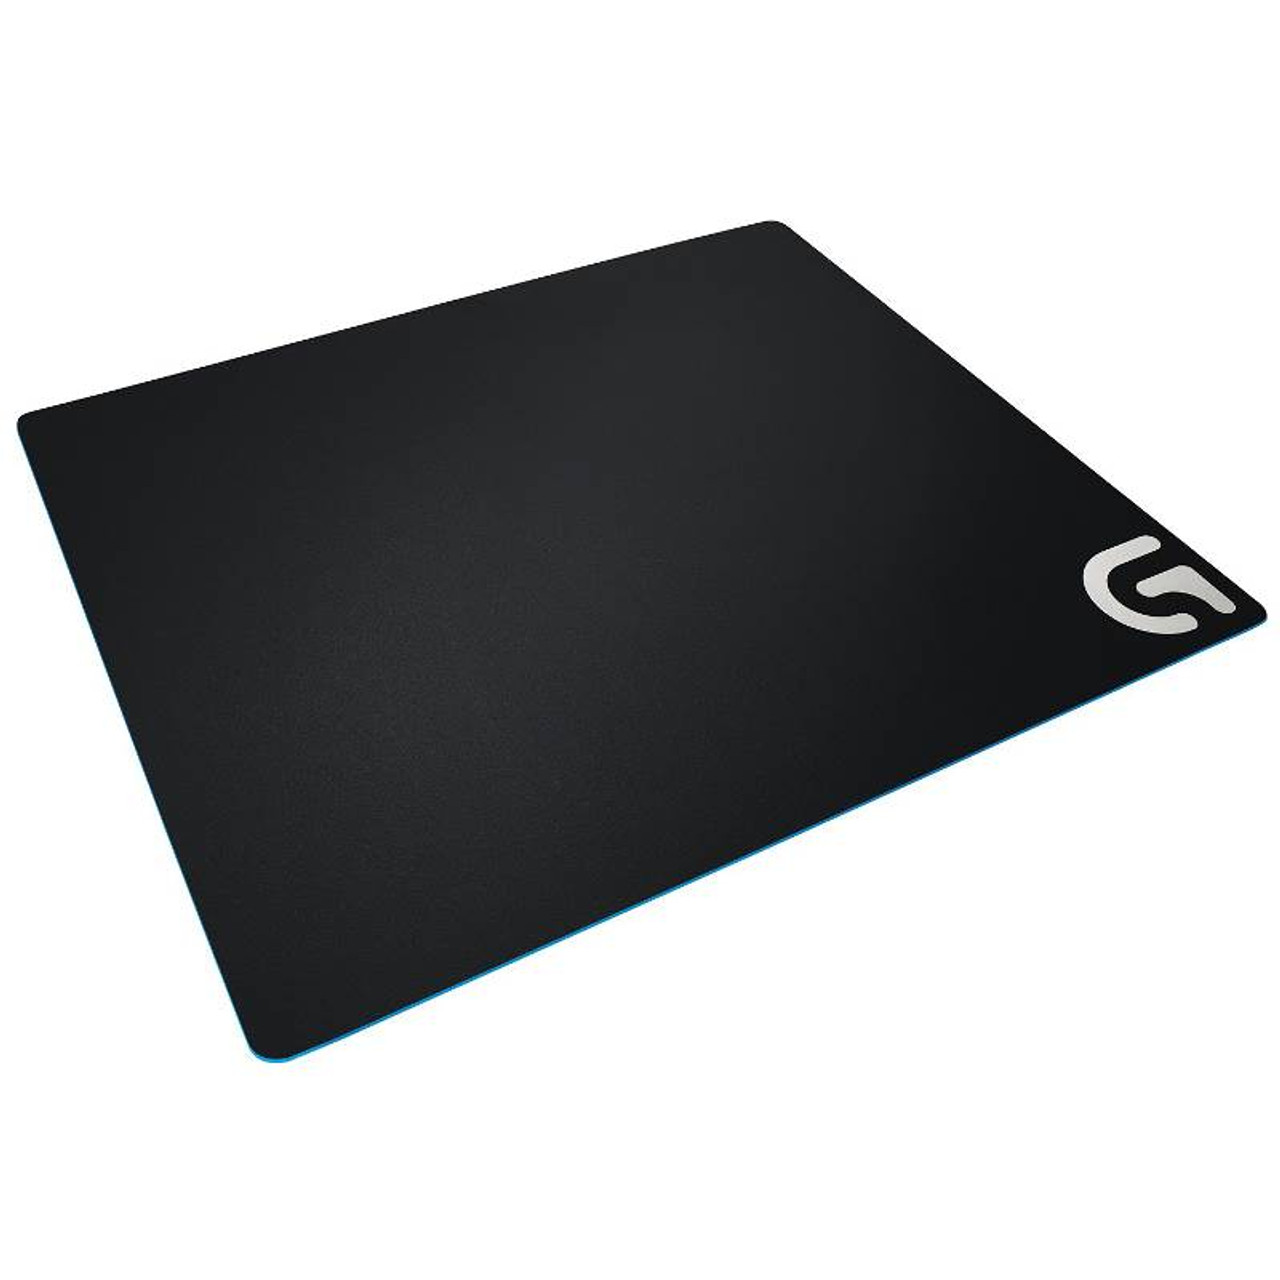 Product image for Logitech G640 Large Cloth Gaming Mouse Pad   CX Computer Superstore